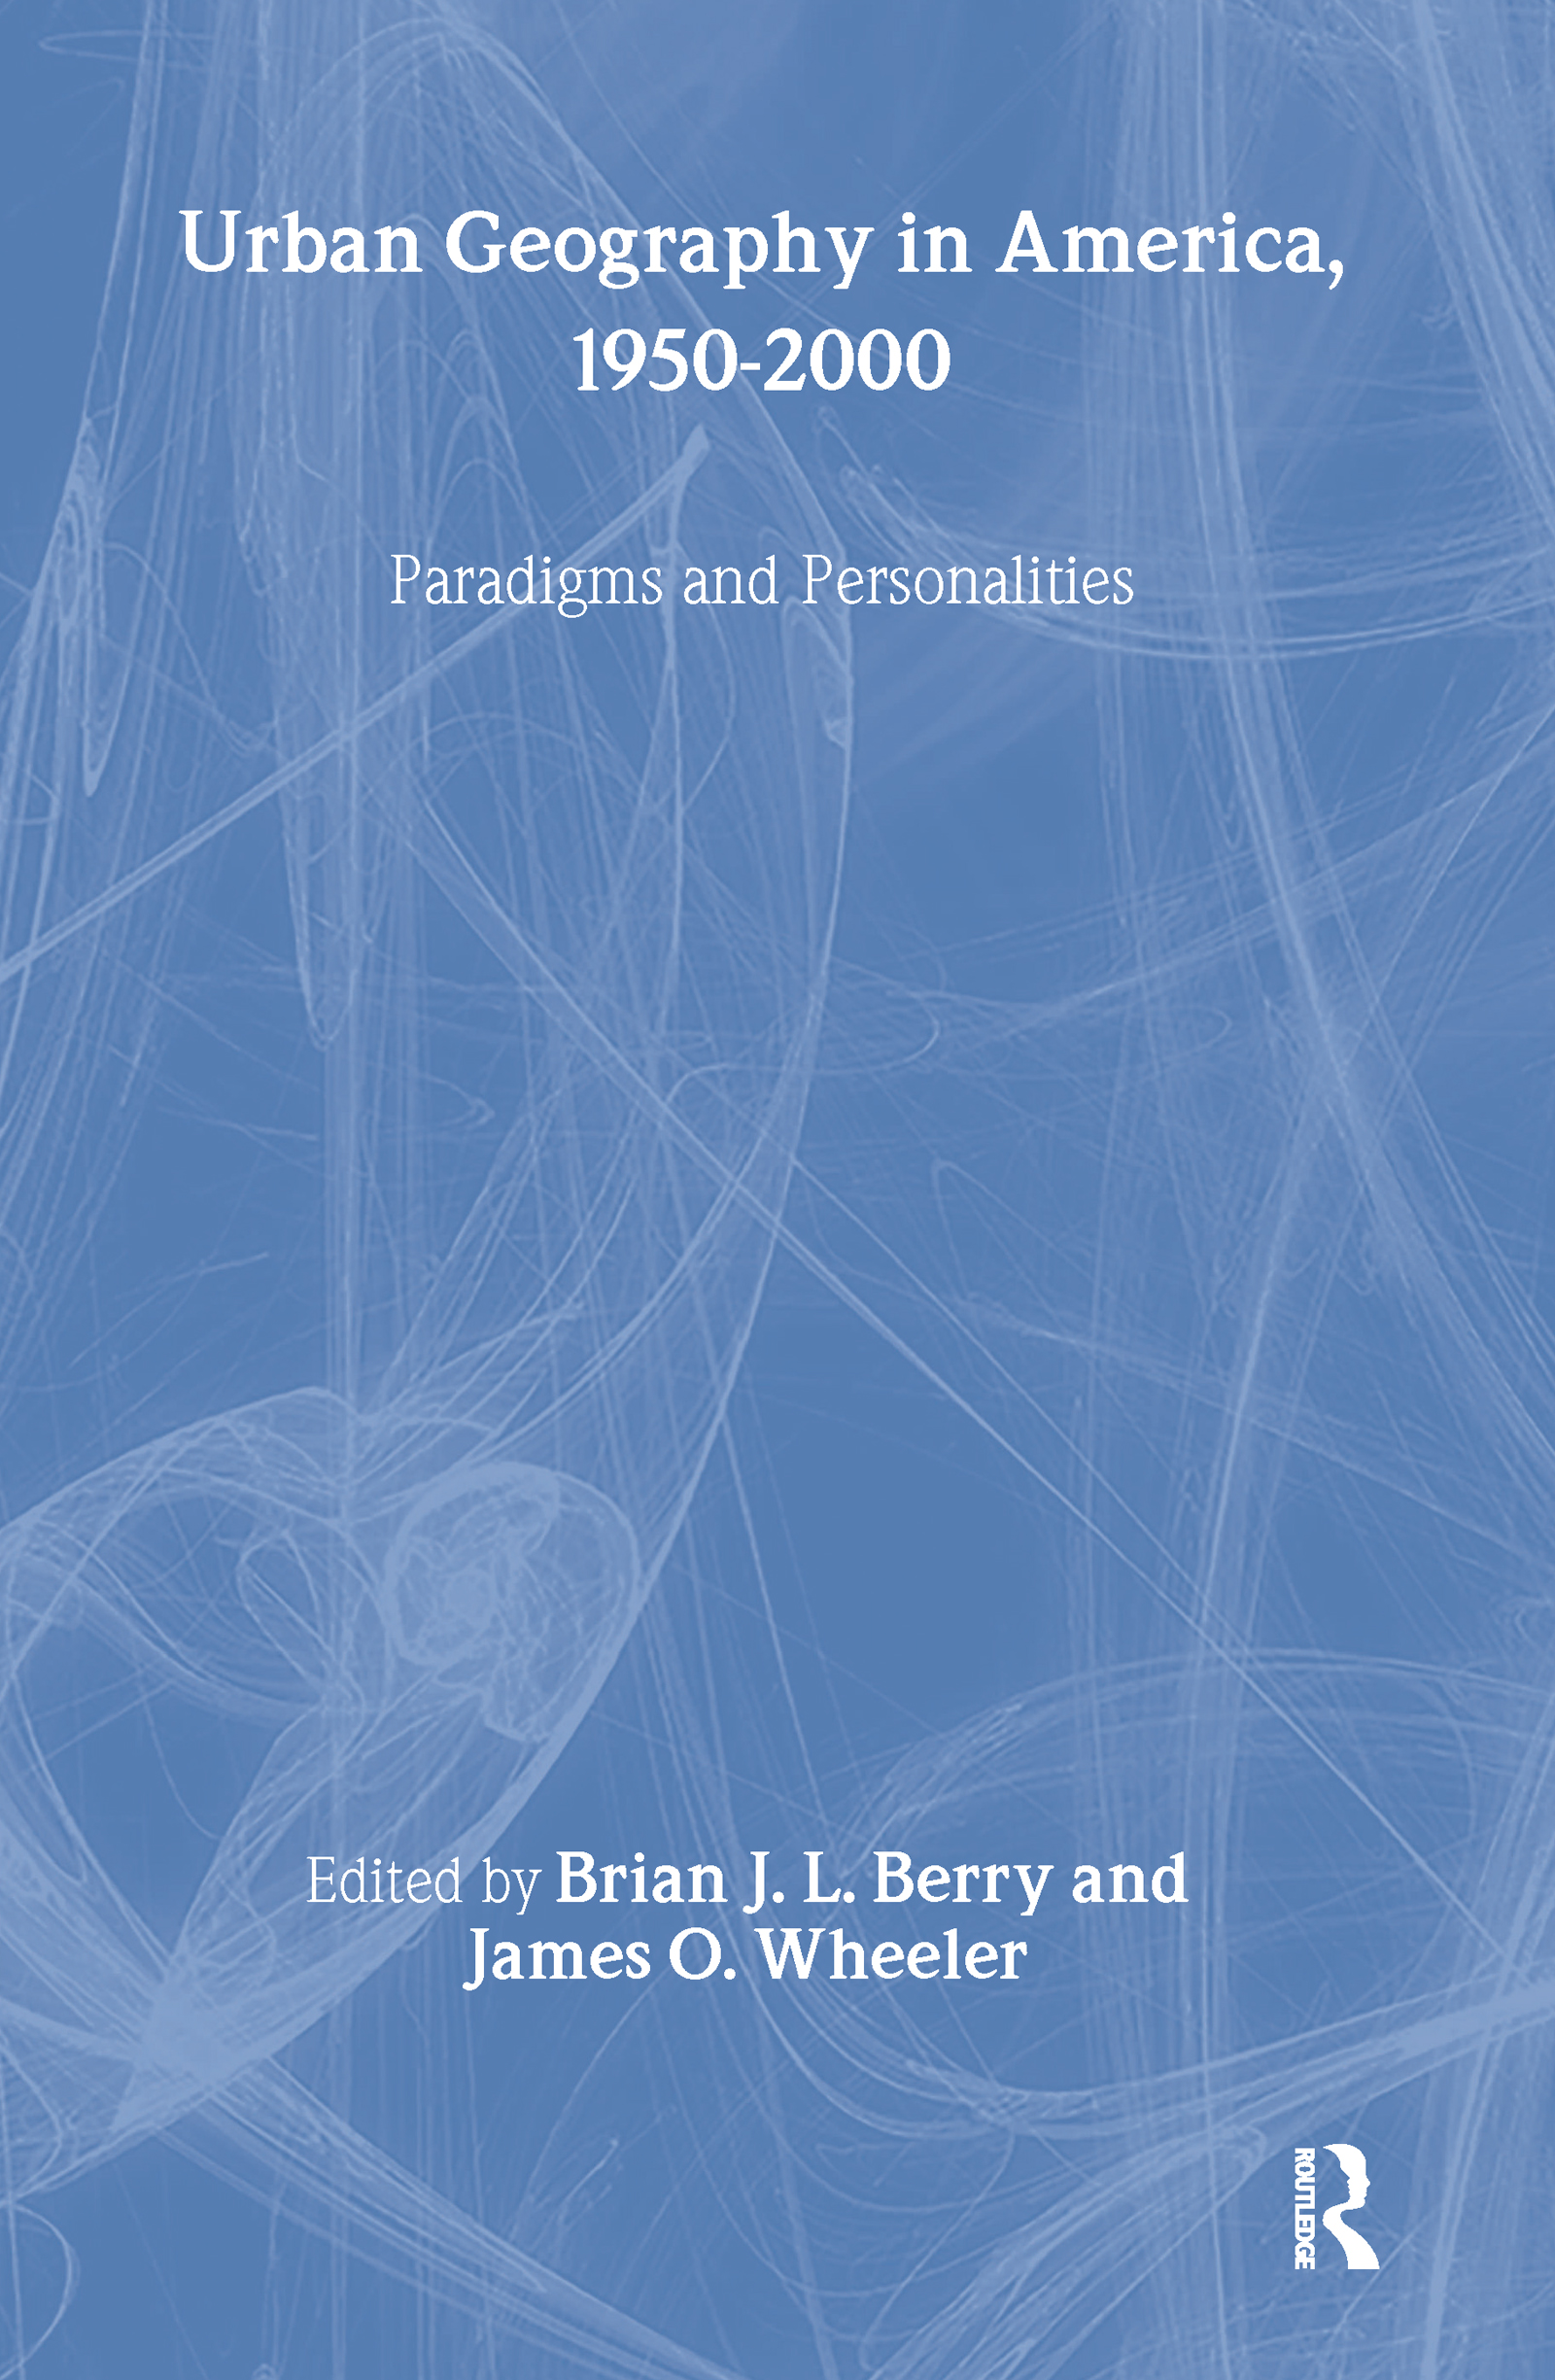 Urban Geography in America, 1950-2000: Paradigms and Personalities book cover